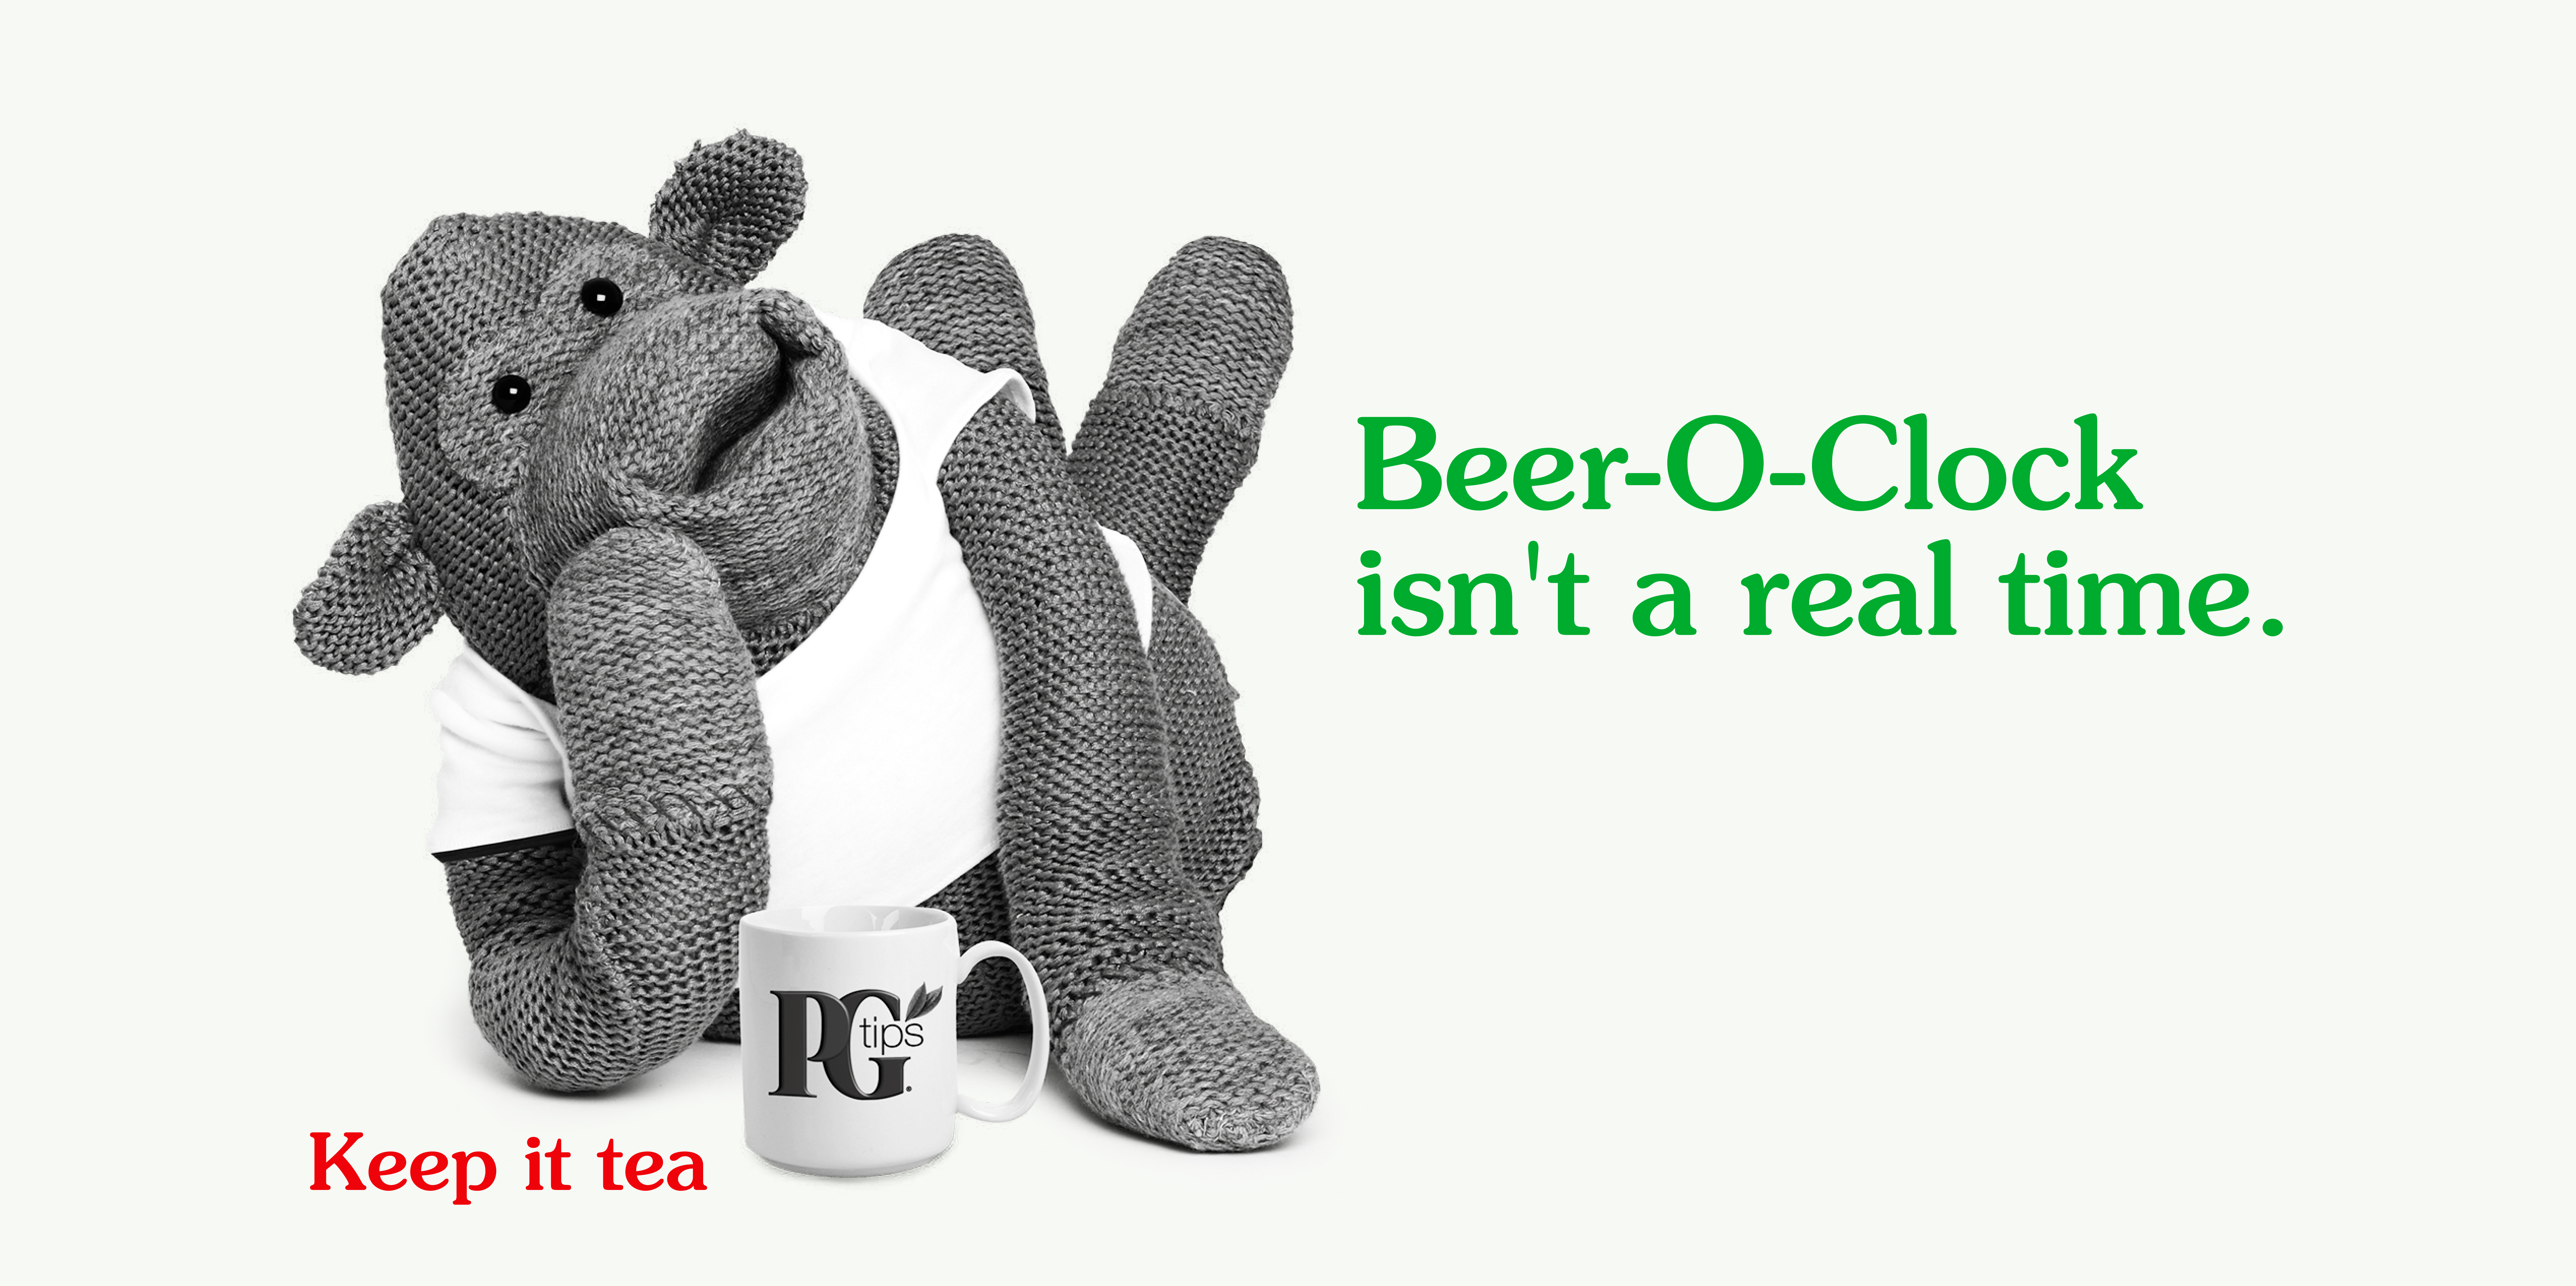 PG tips 'Beer 'O'' rough